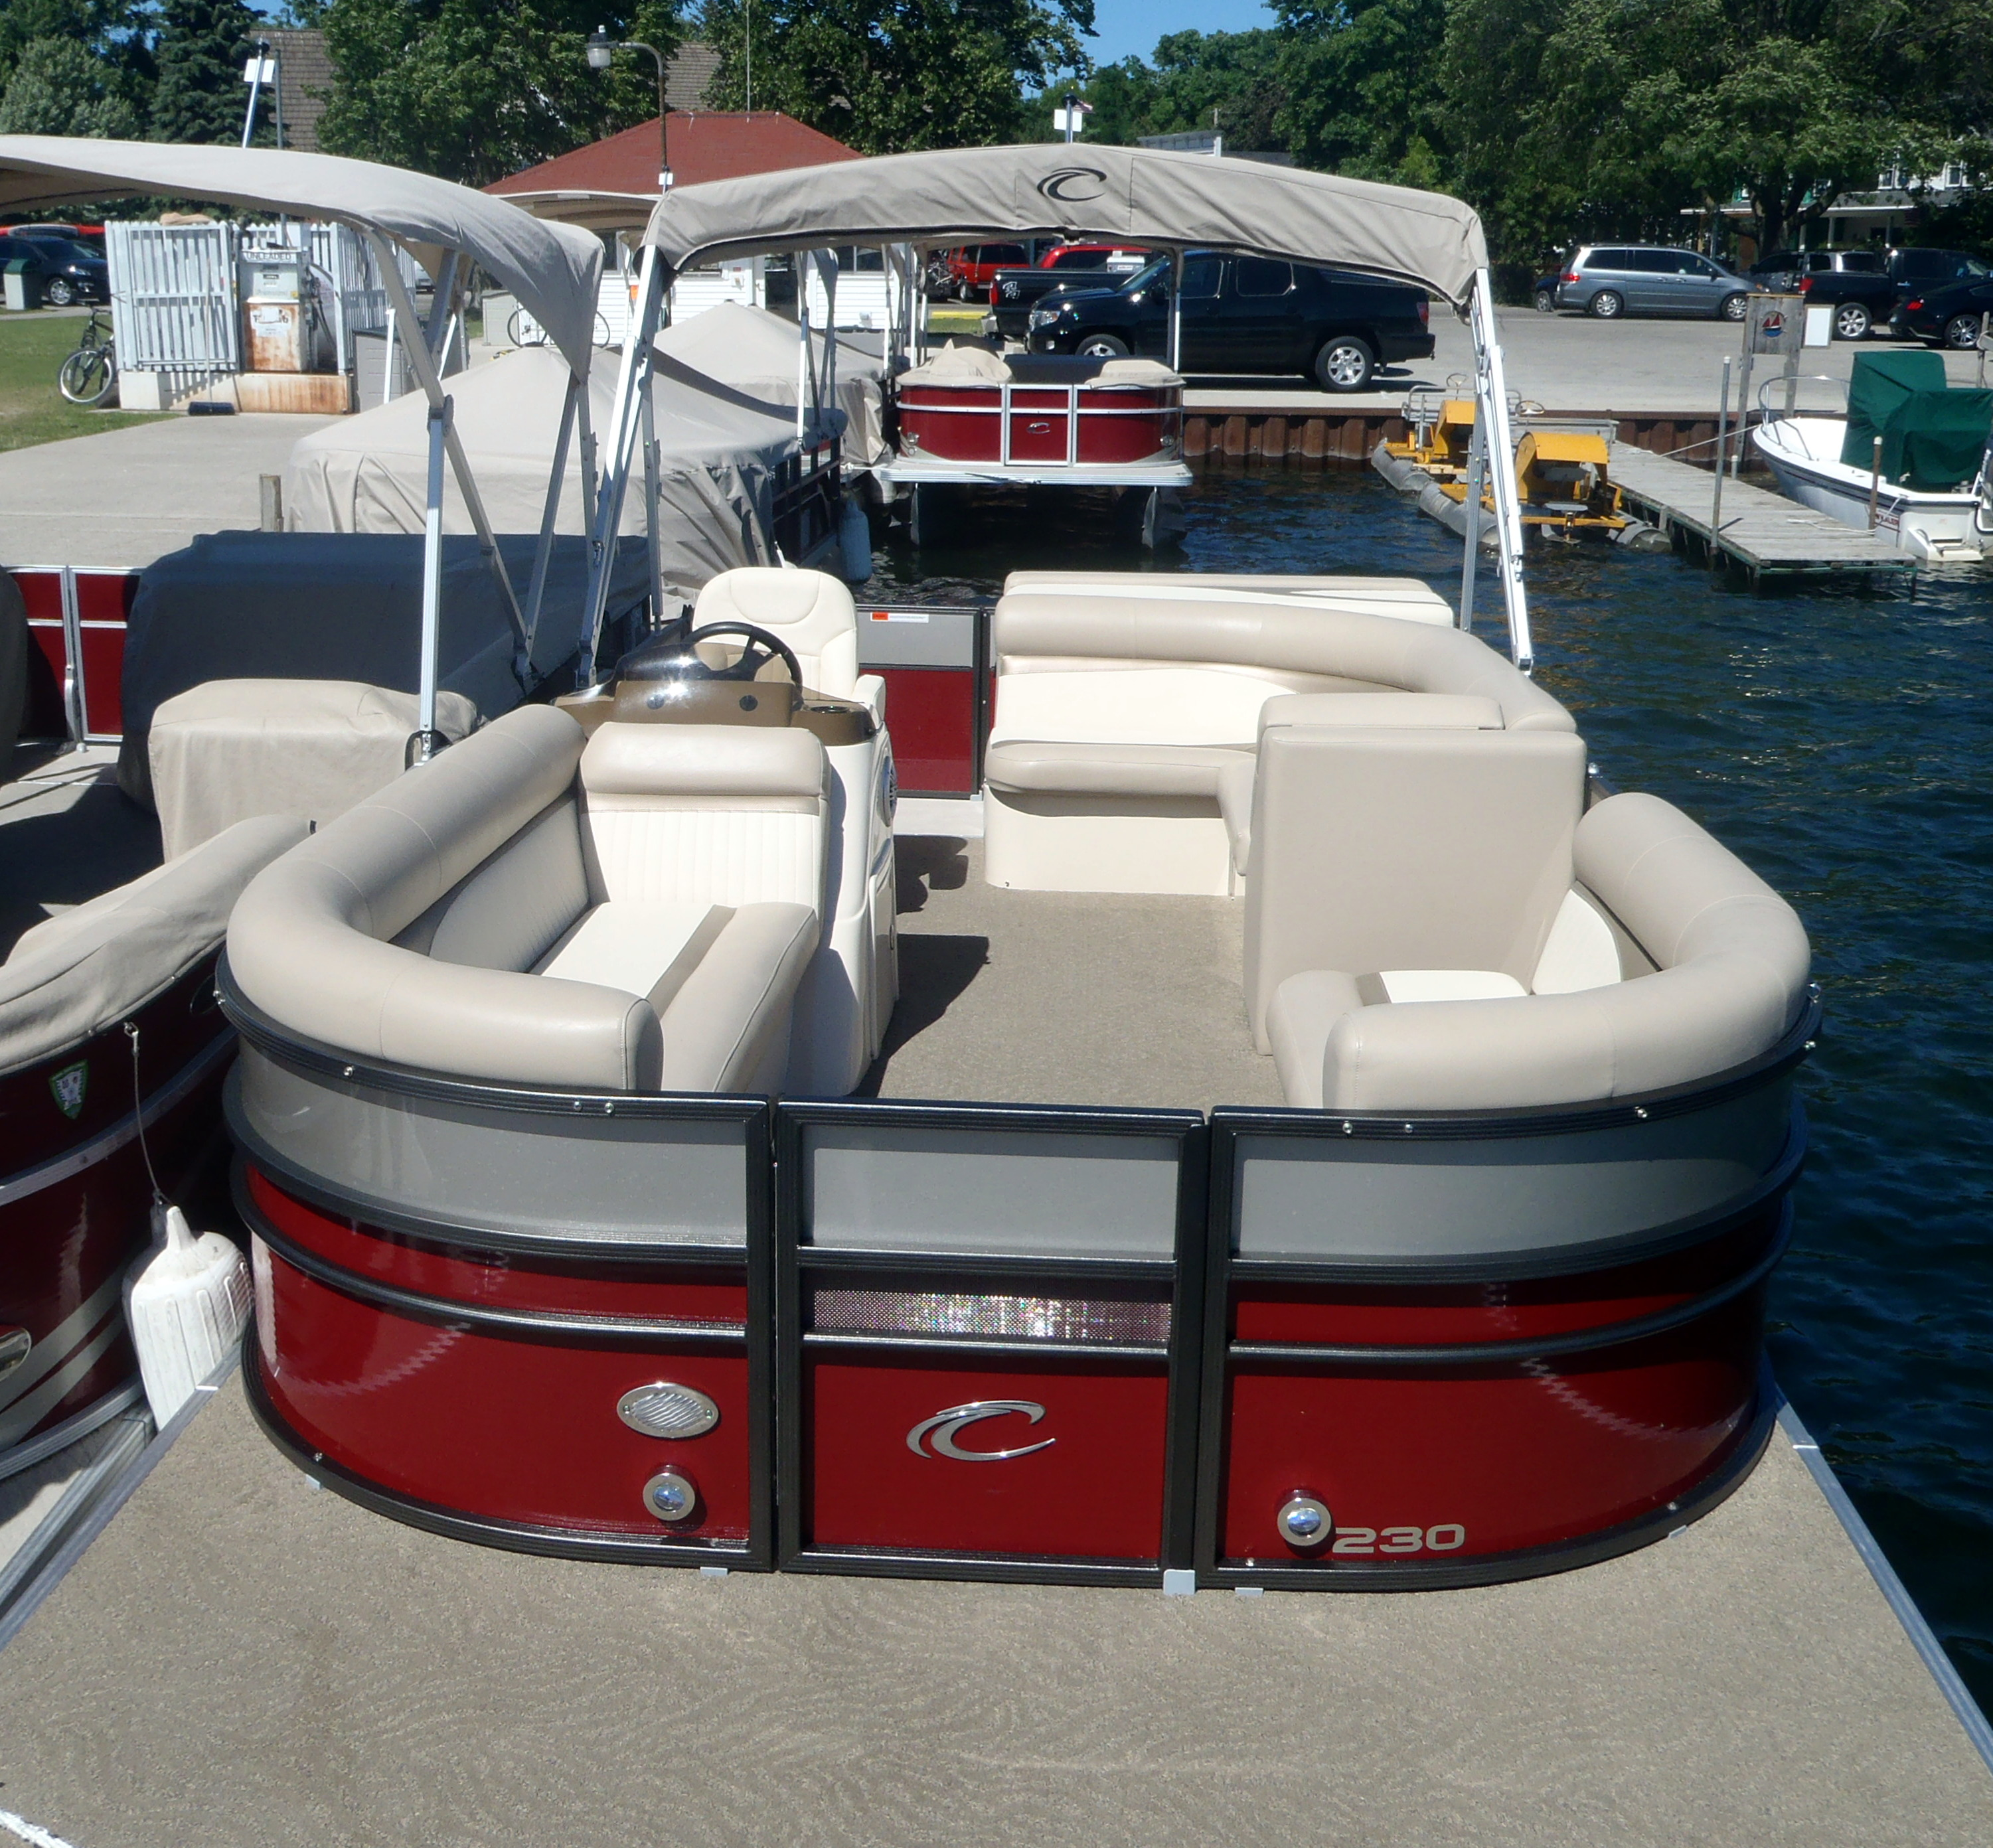 South Shore Pier Door County Boat Rentals Pontoon Boats - Picnic table boat for sale